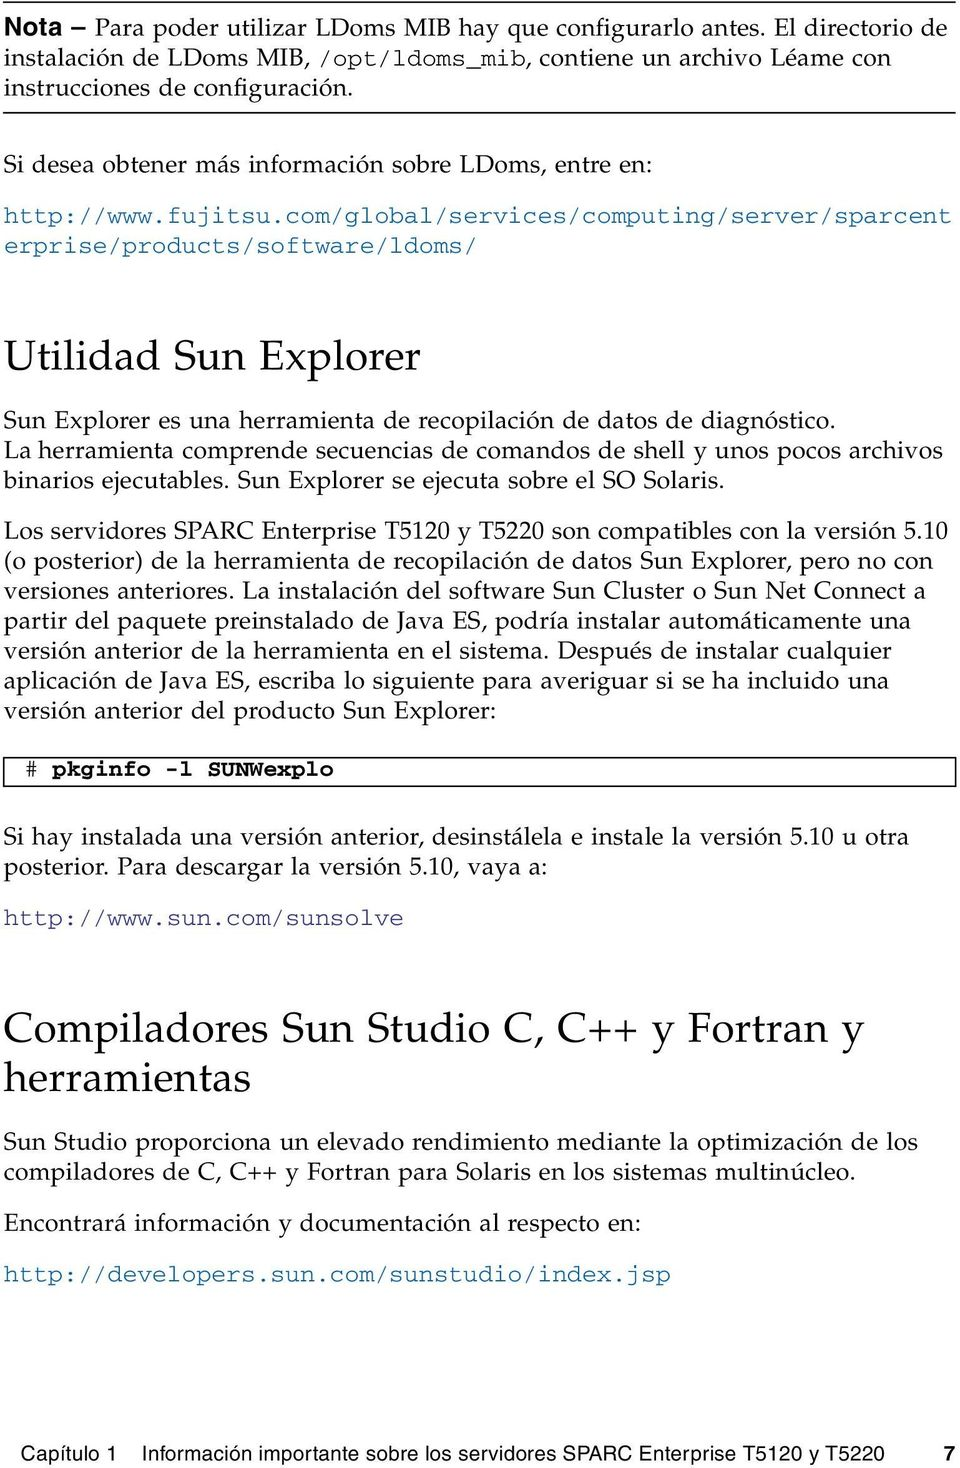 com/global/services/computing/server/sparcent erprise/products/software/ldoms/ Utilidad Sun Explorer Sun Explorer es una herramienta de recopilación de datos de diagnóstico.